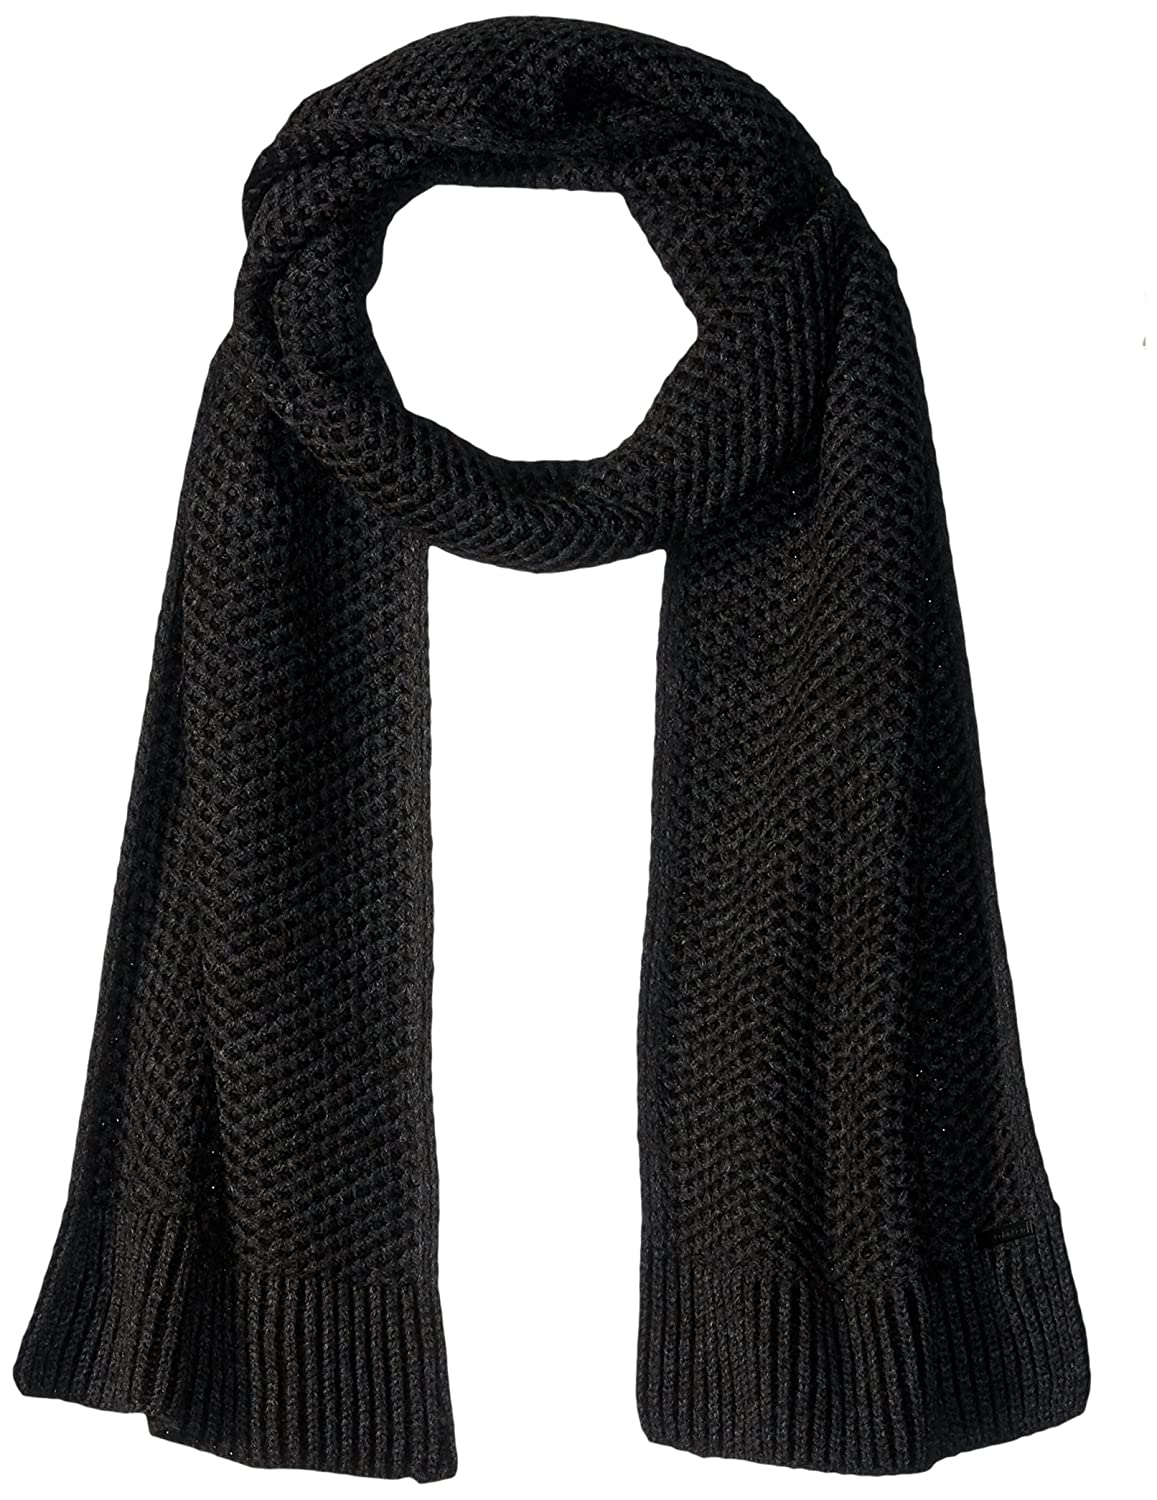 Calvin Klein Men's Two Tone Thermal Knit Scarf Accessory Charcoal One Size HKC63201